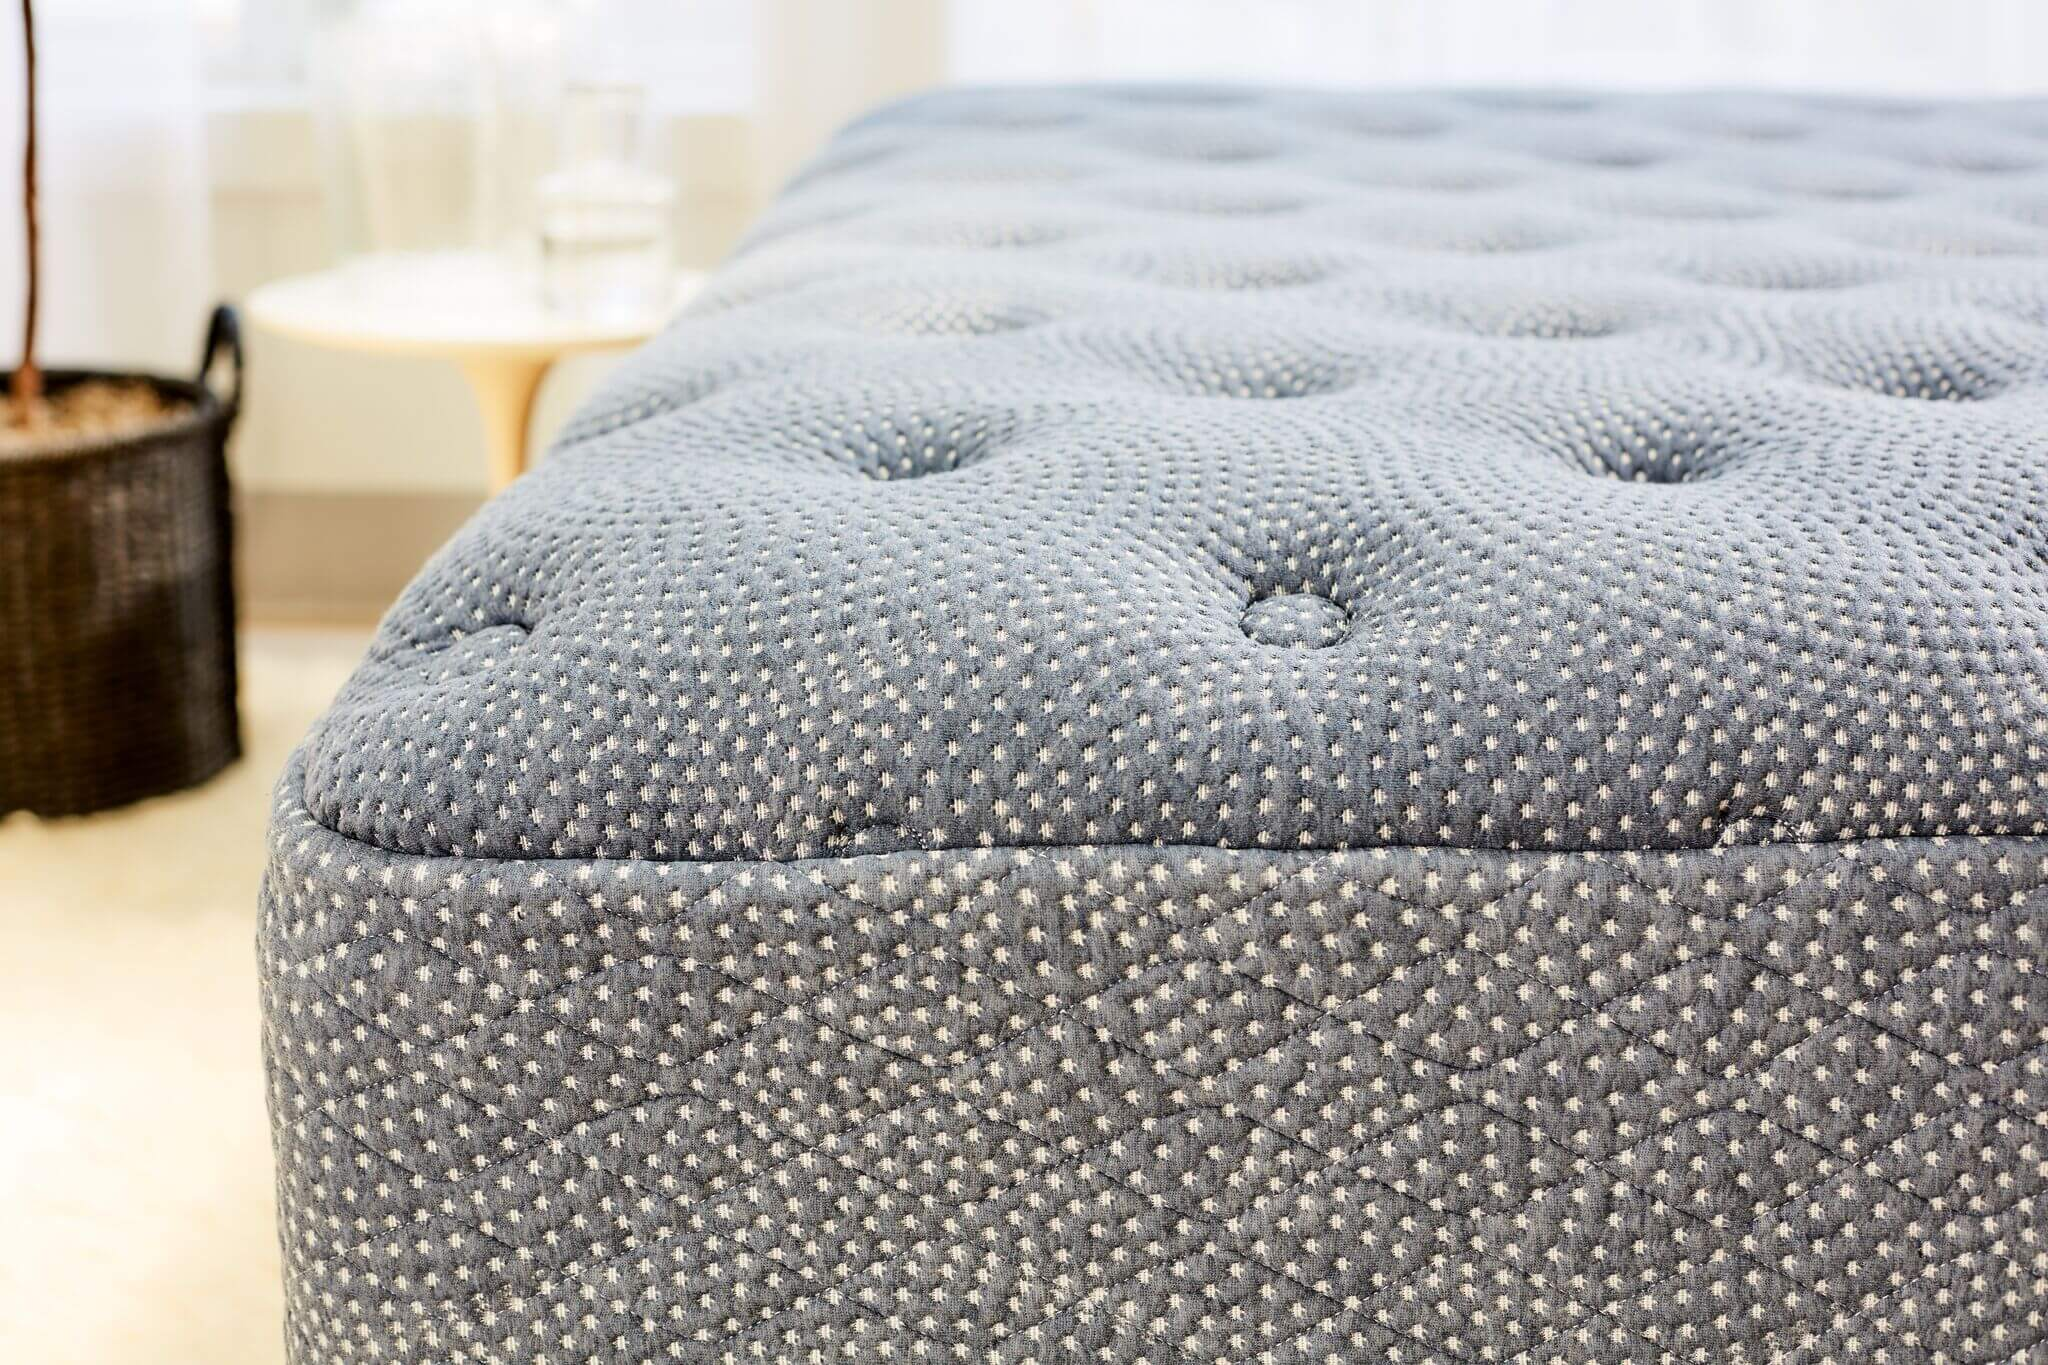 best mattress, best mattress for 2019, best mattresses, best online mattress, best mattress in a box, best bed in a box, best mattress 2019